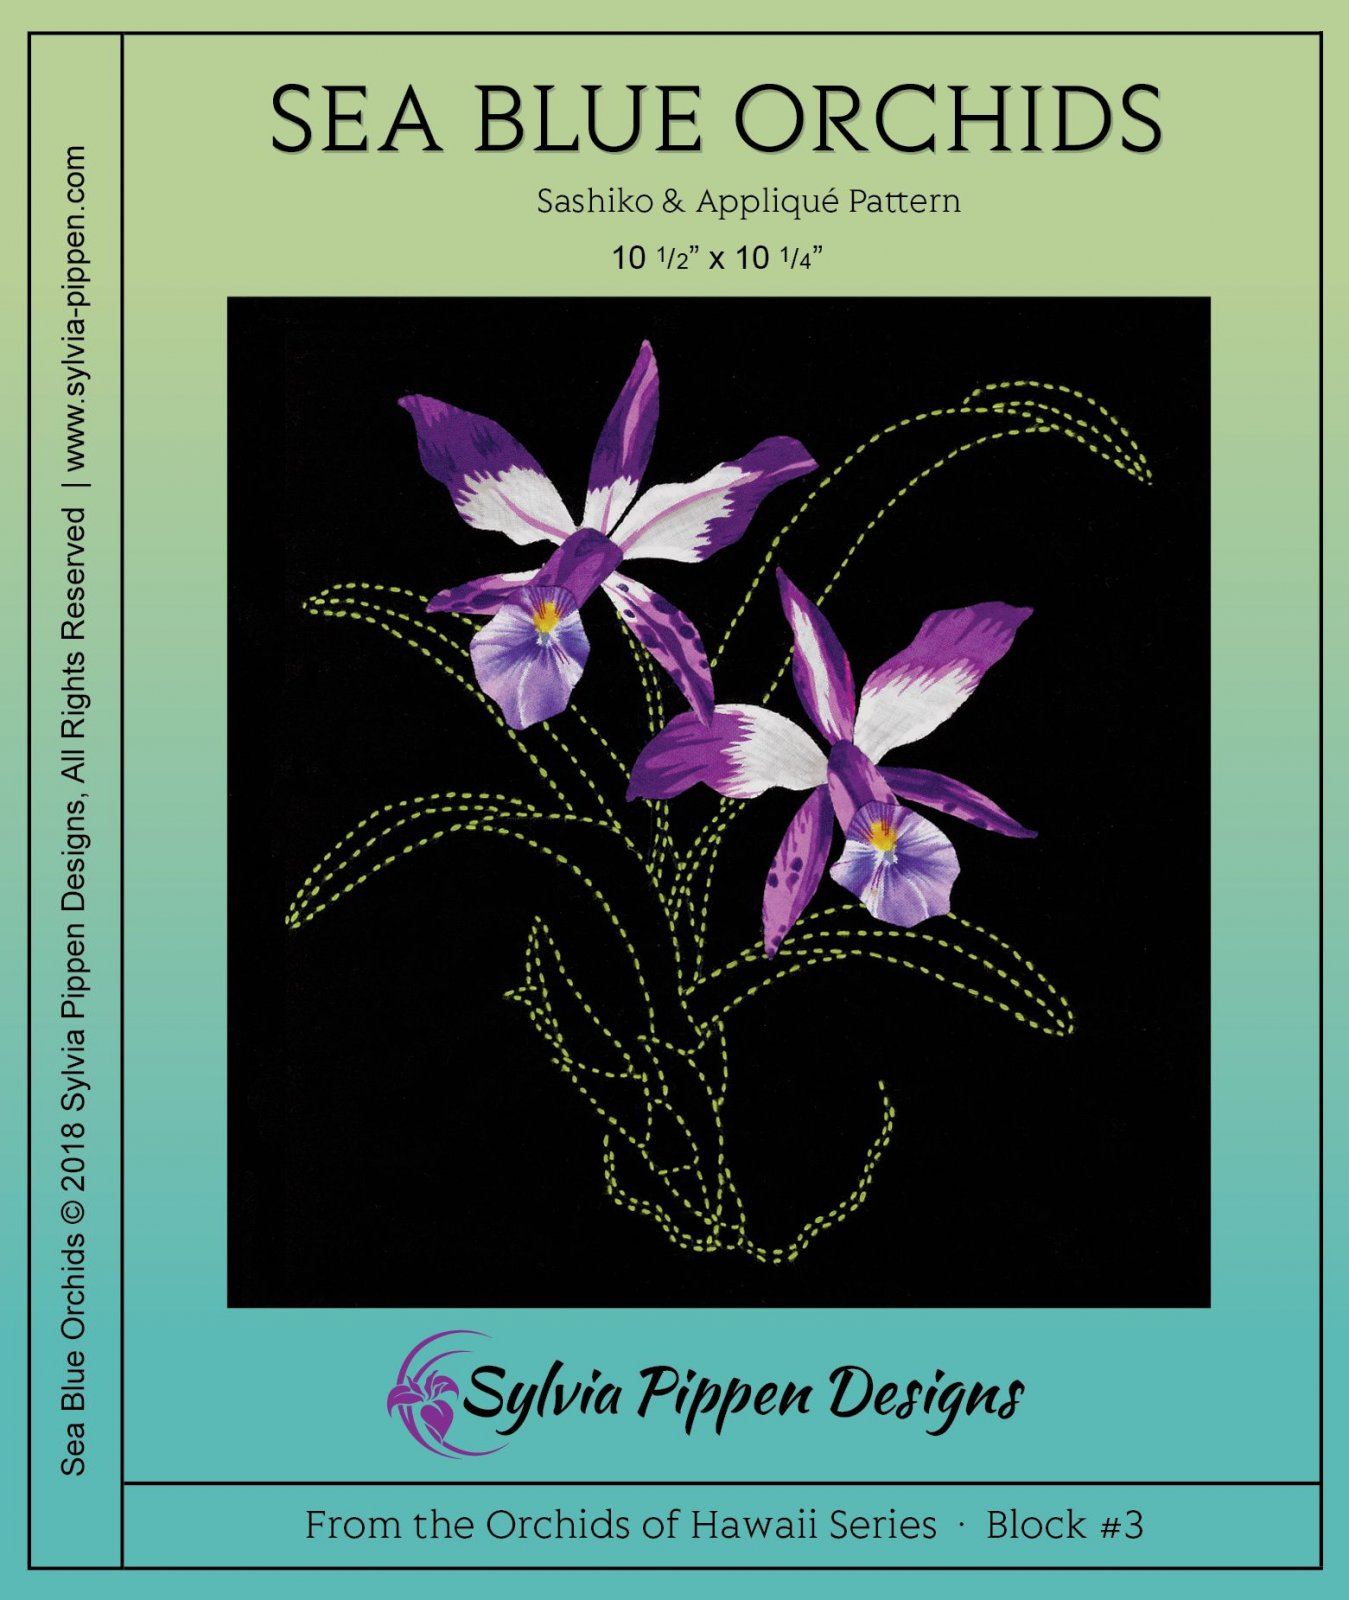 Sea Blue Orchids Sashiko & Applique Pattern from the Orchids of Hawaii Series